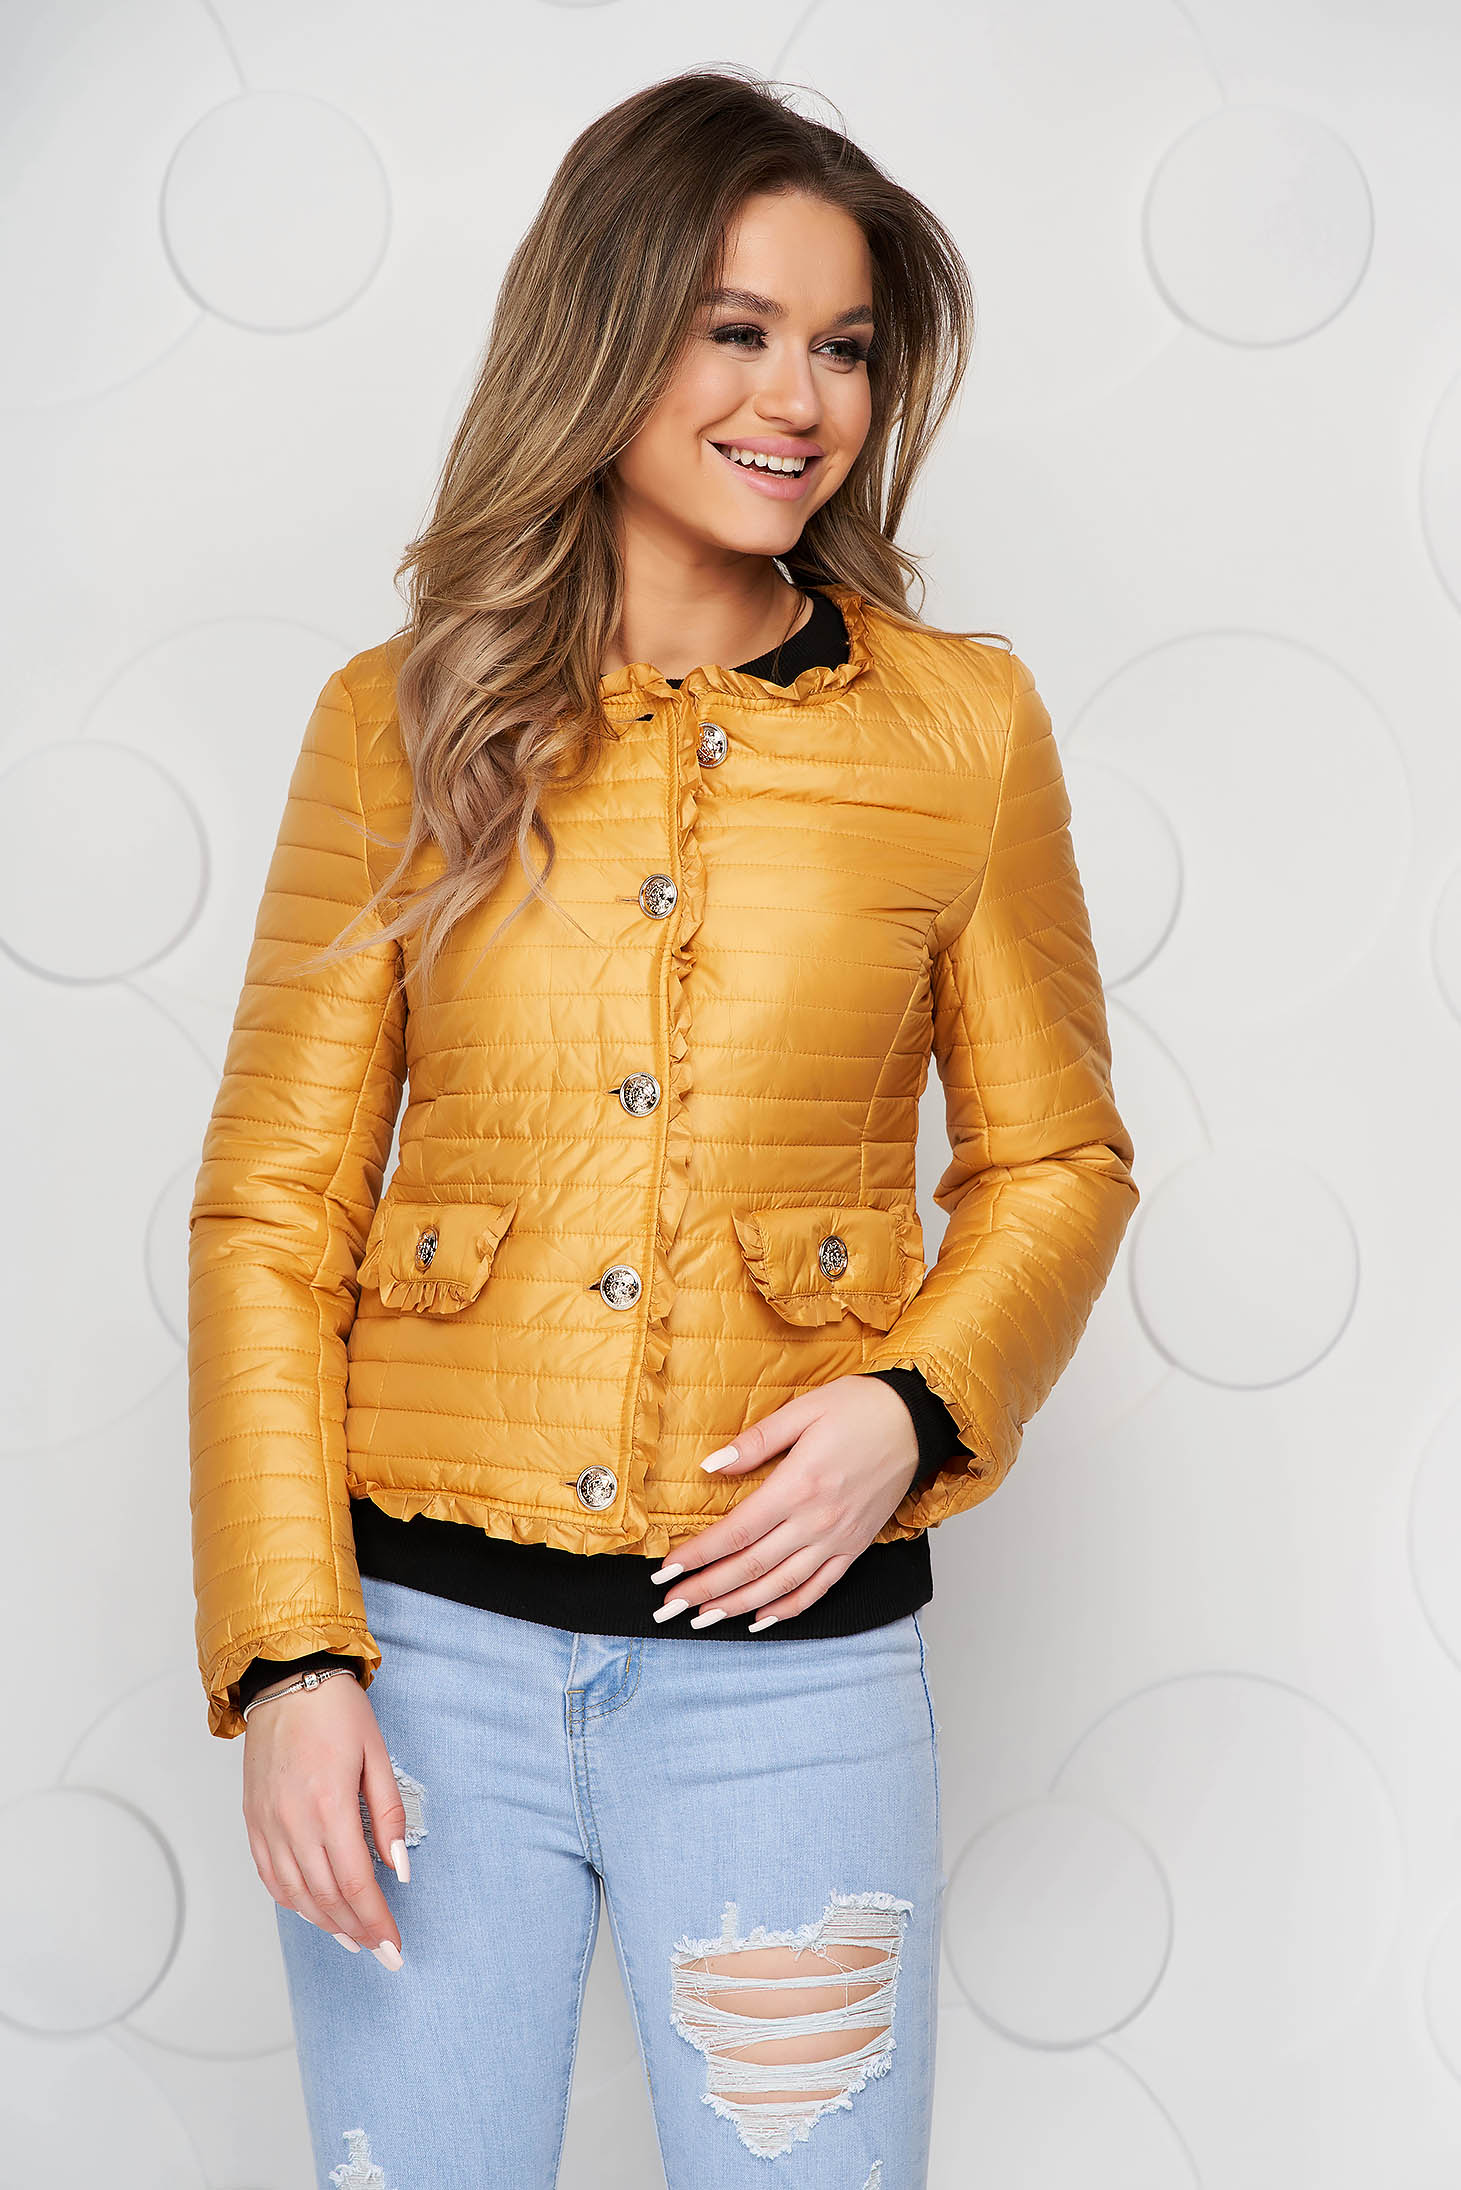 Mustard jacket short cut tented thin fabric with ruffle details from slicker